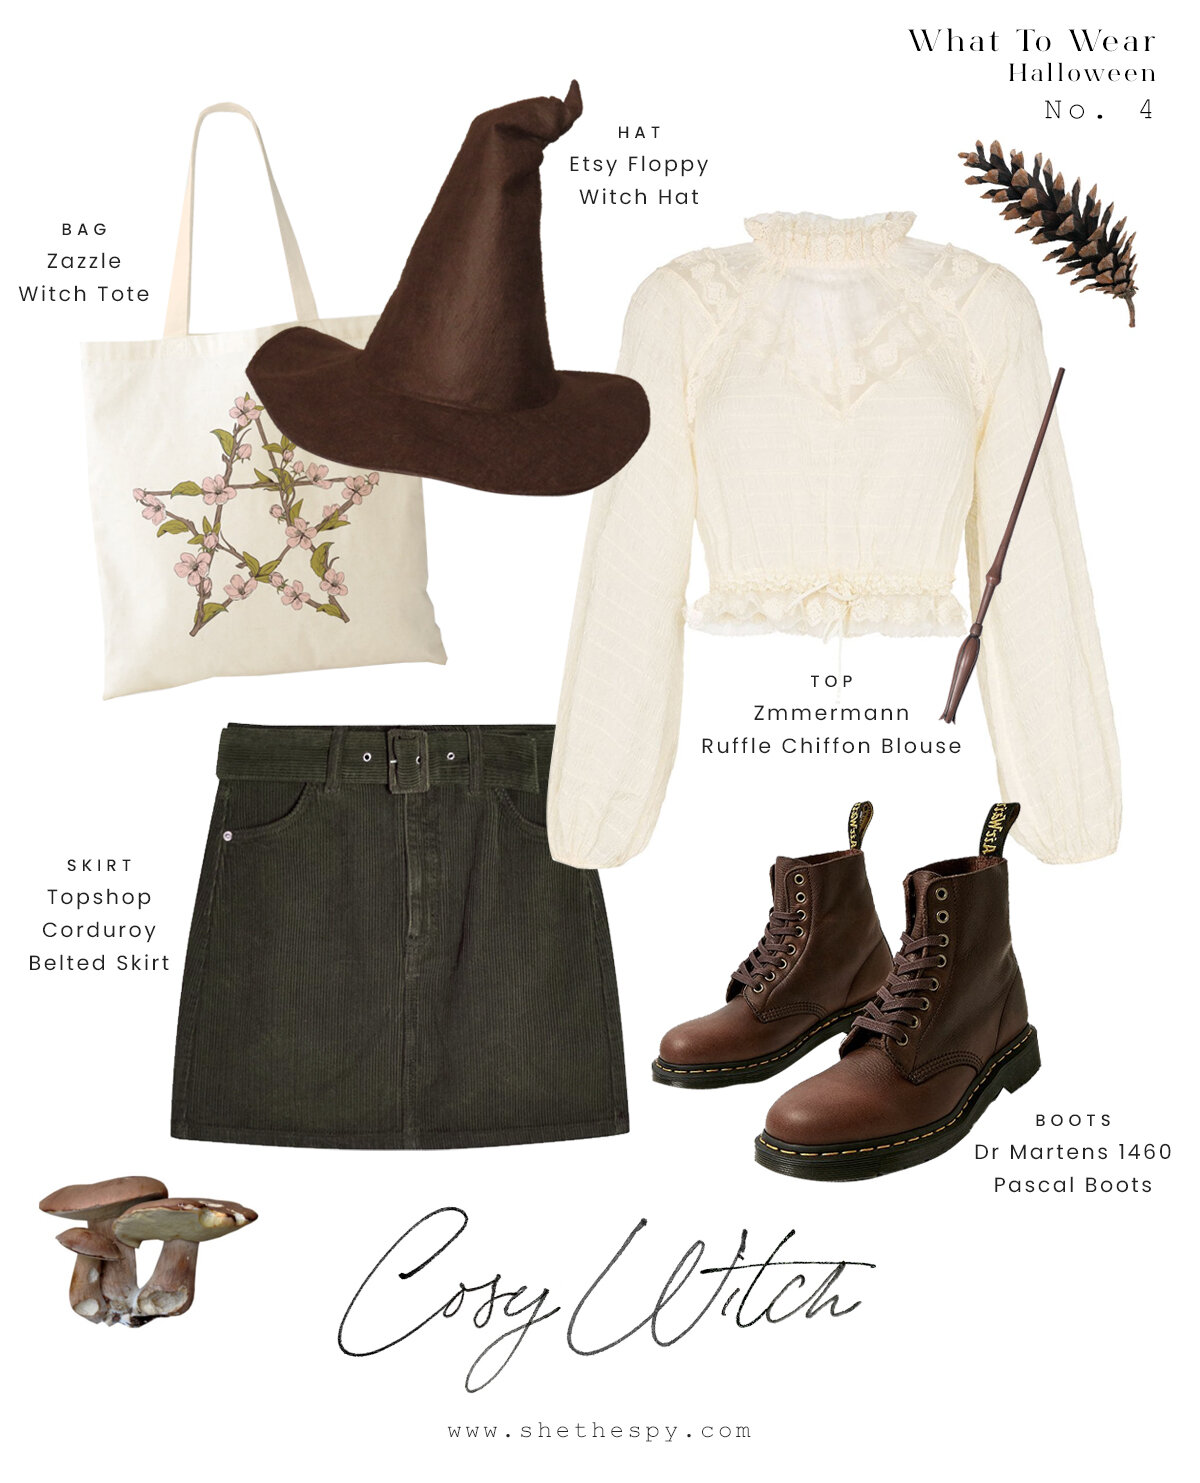 shethespy-halloween-outfit-Cosy-Witch.jpg